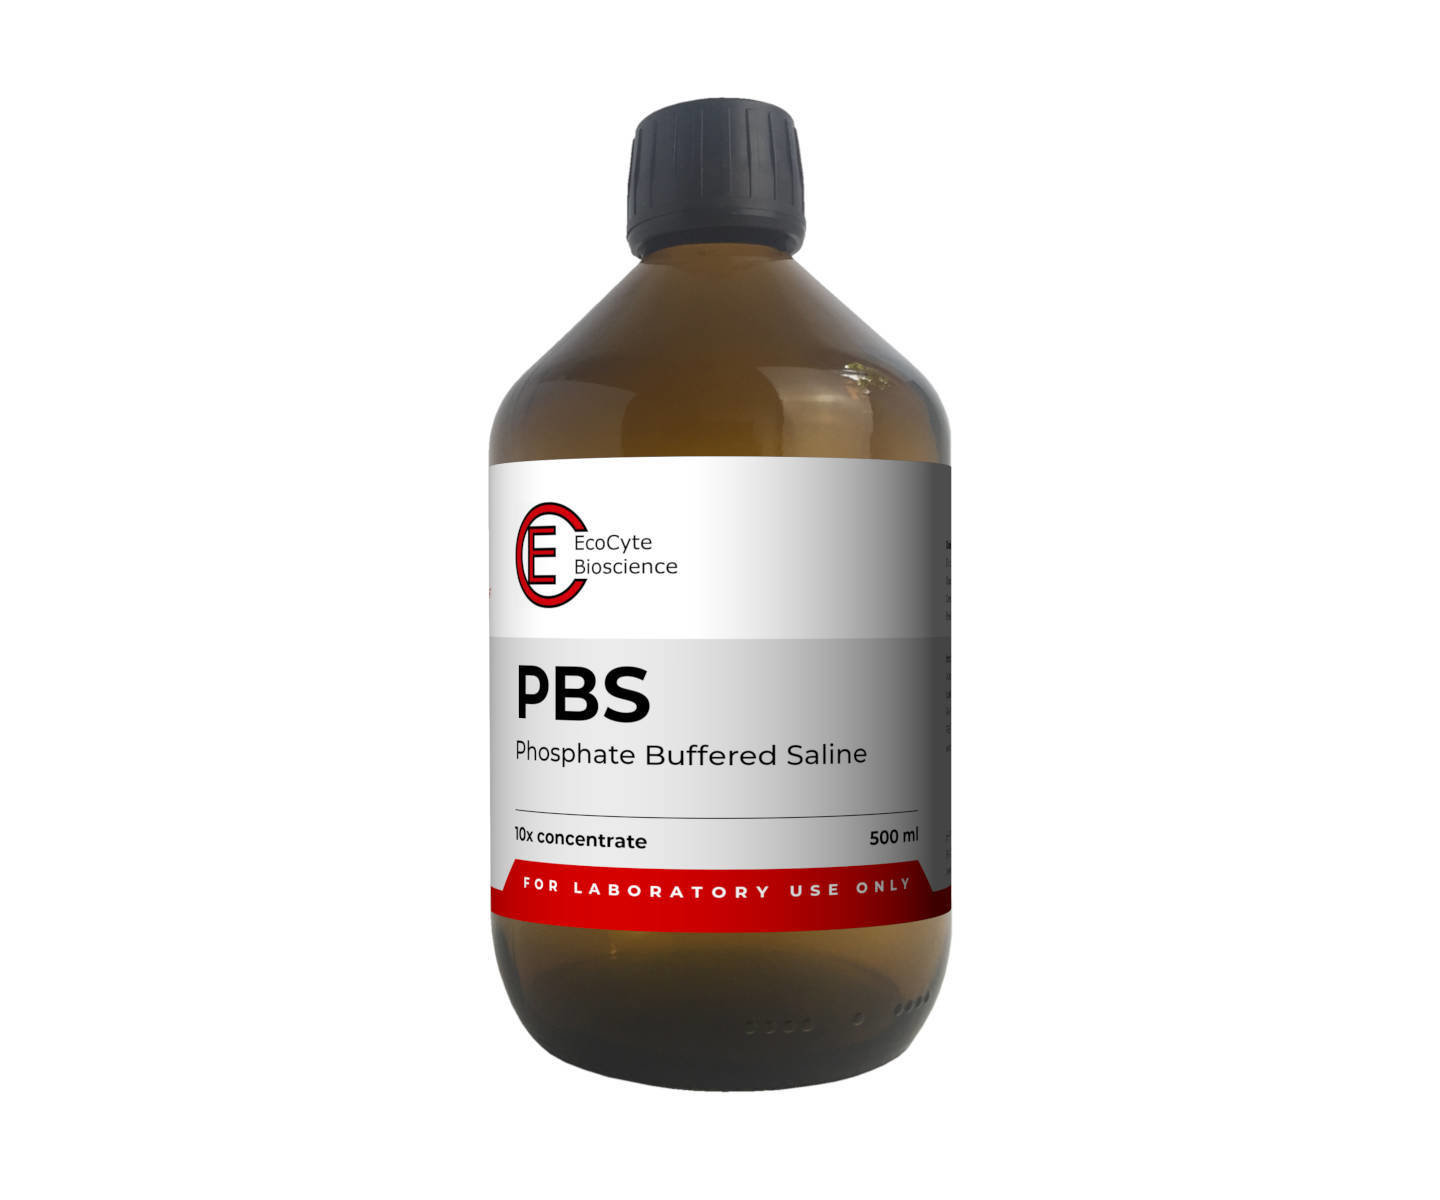 PBS – Phosphate Buffered Saline [10x concentrate]